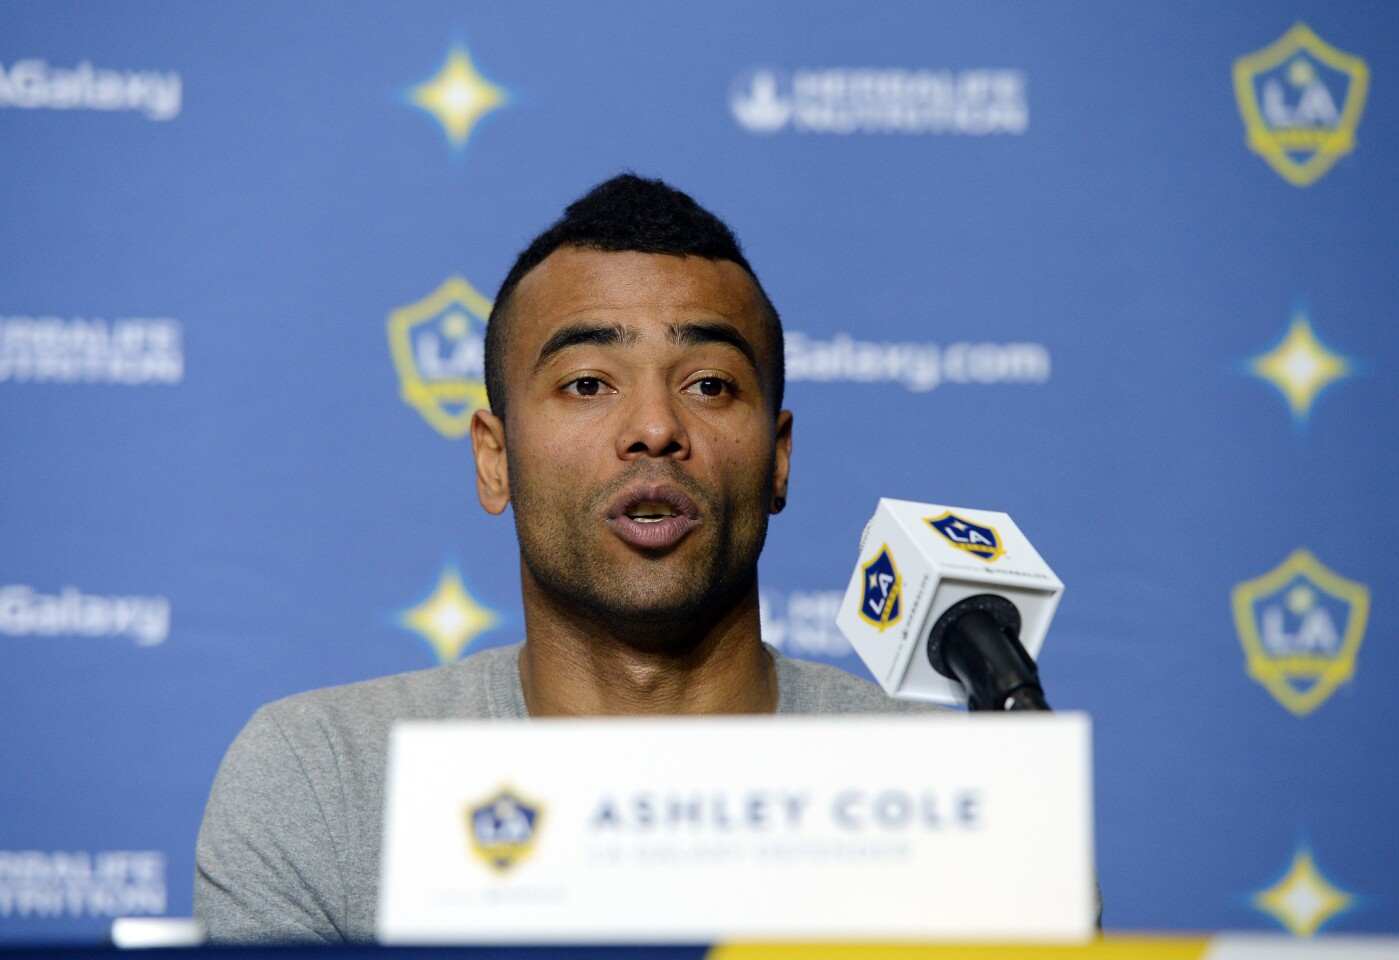 CARSON, CA - FEBRUARY 5: Ashley Cole #3 of the Los Angeles Galaxy speaks after he was introduced during a news conference at StubHub Center February 5, 2016, in Carson, California. (Photo by Kevork Djansezian/Getty Images) ** OUTS - ELSENT, FPG, CM - OUTS * NM, PH, VA if sourced by CT, LA or MoD **